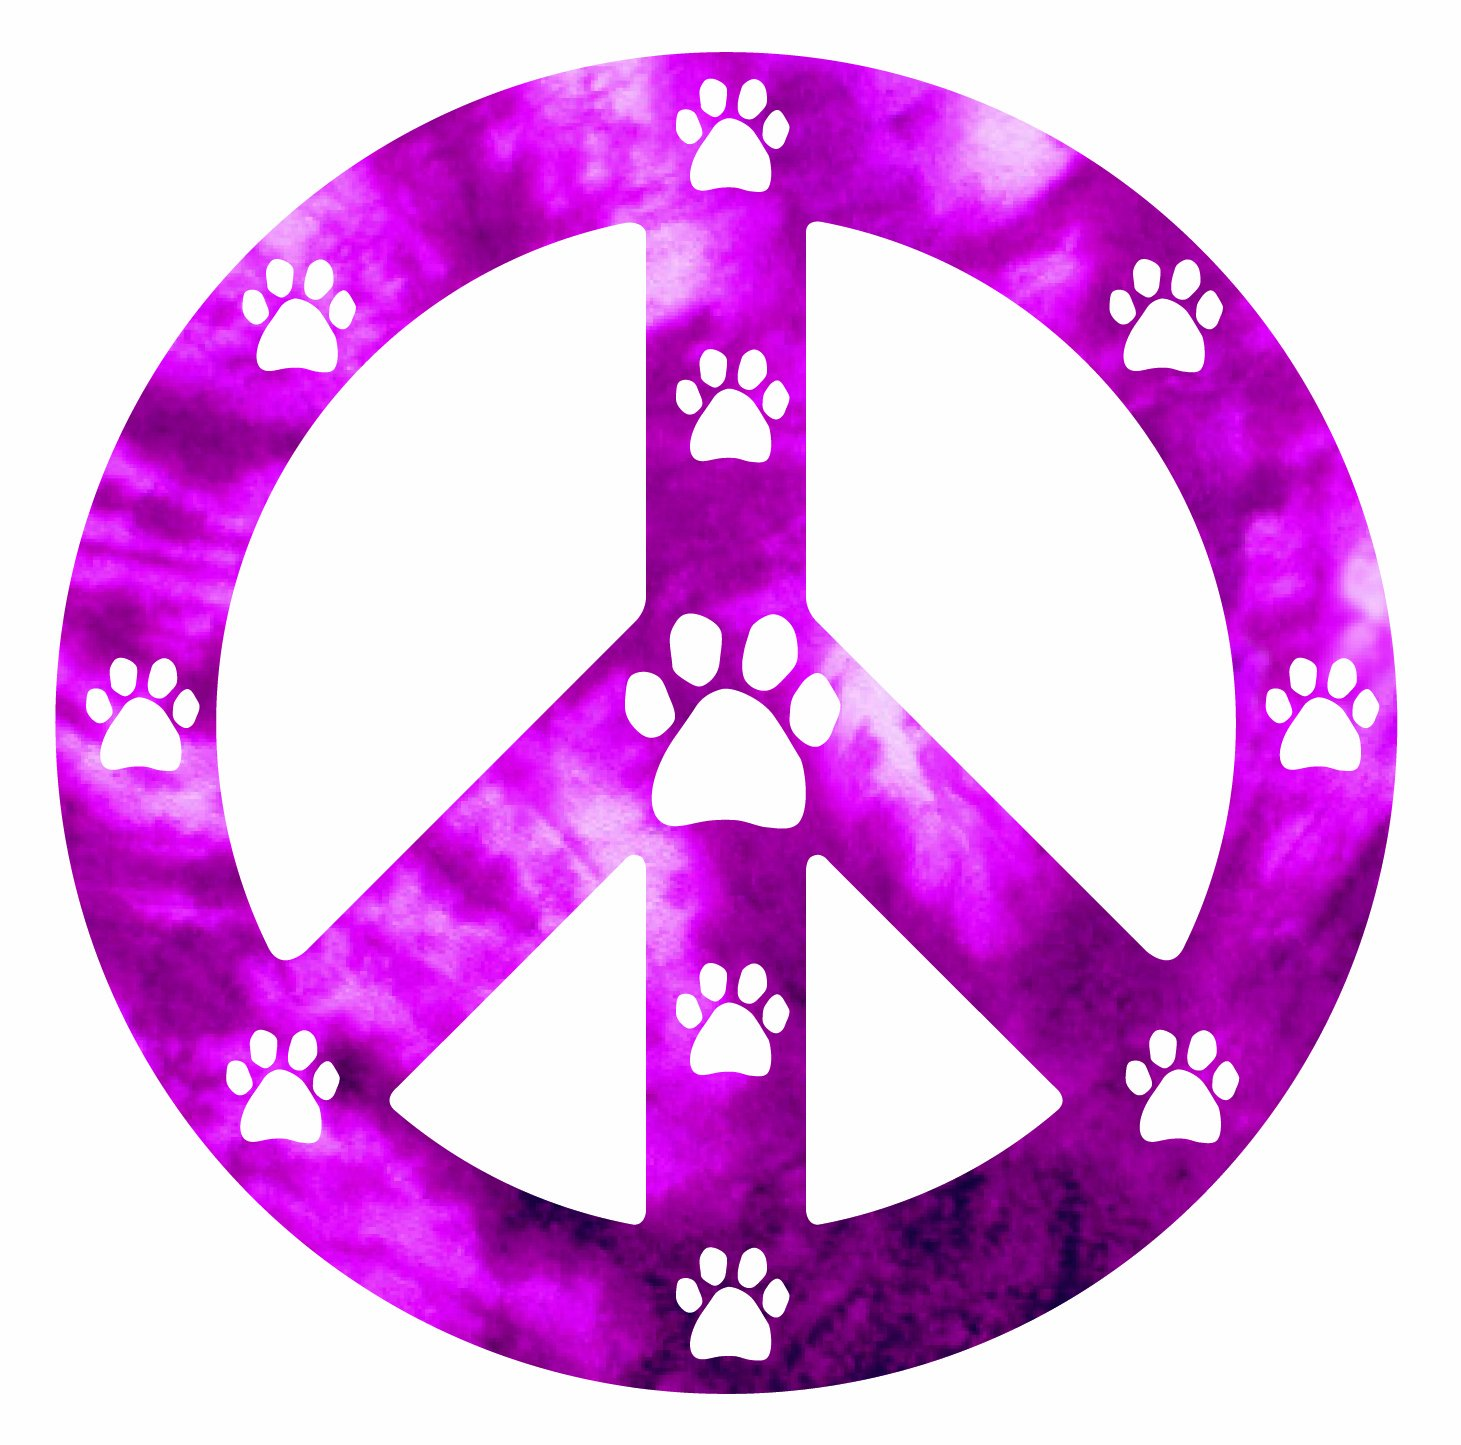 Imagine This 4-3 4-Inch by 4-3 4-Inch Car Magnet Peace Dog Pink